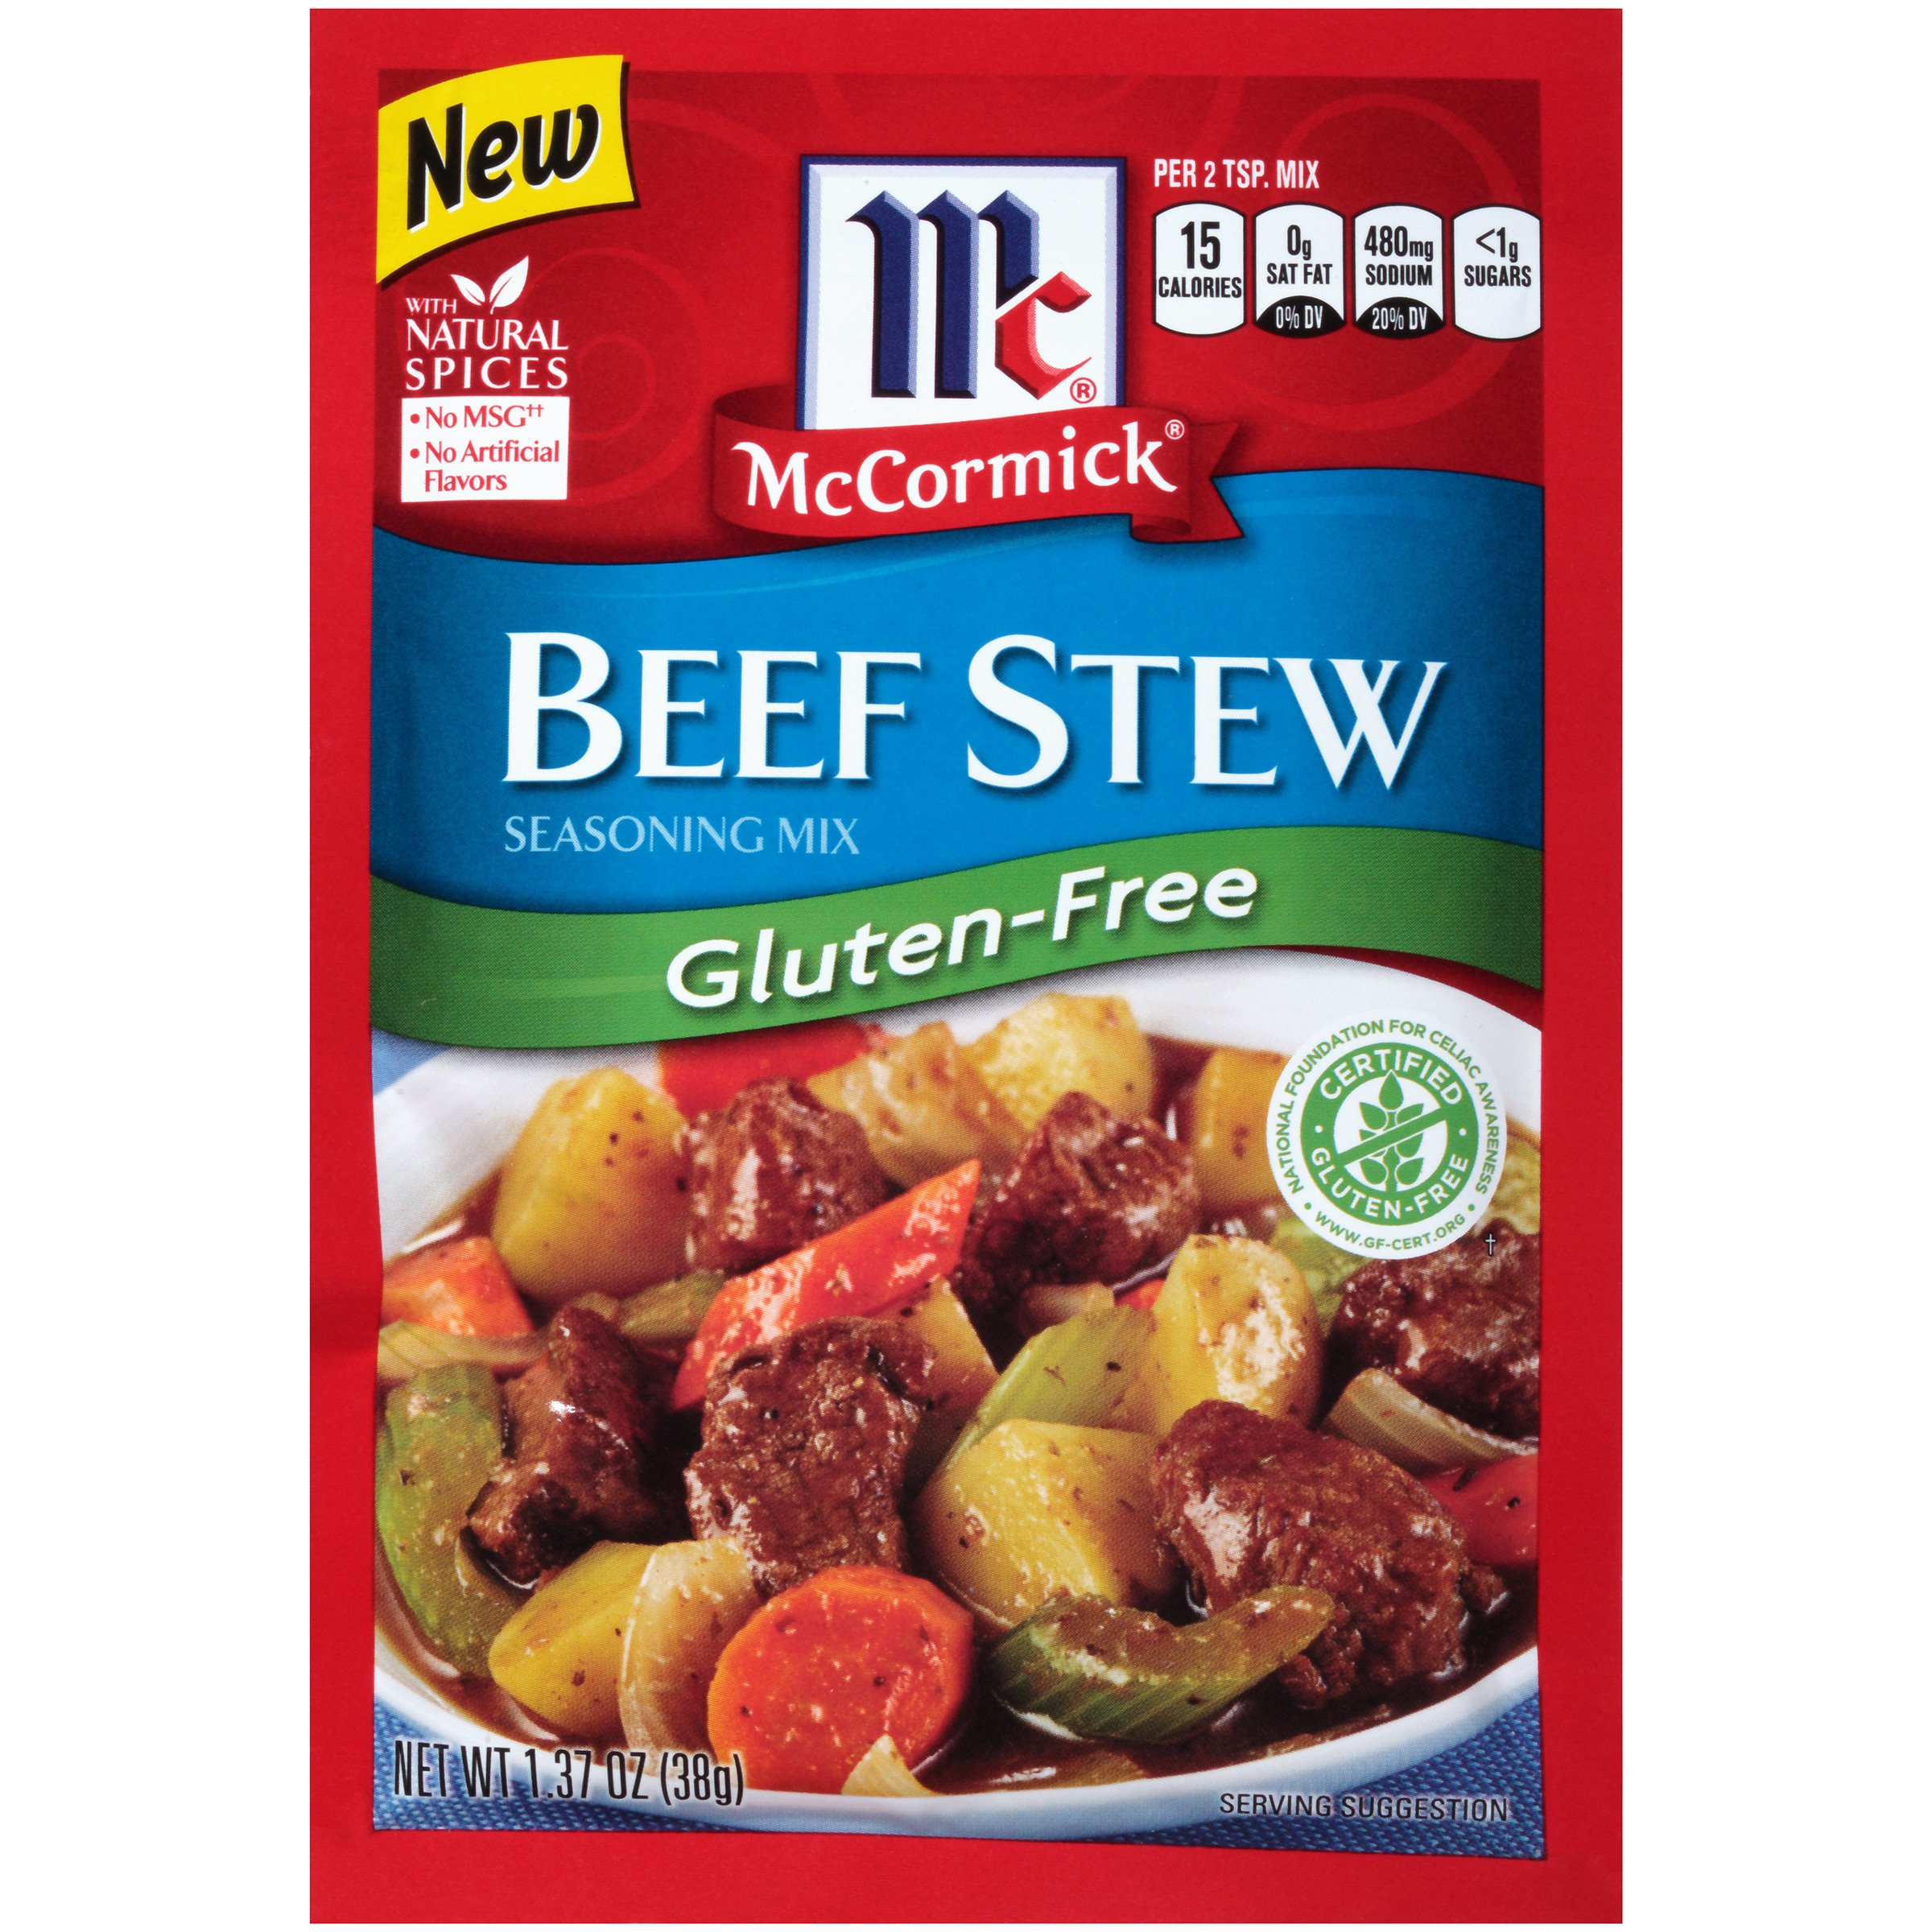 McCormick Gluten Free Beef Stew Seasoning Mix, 1.37 Ounce (Pack of 12)